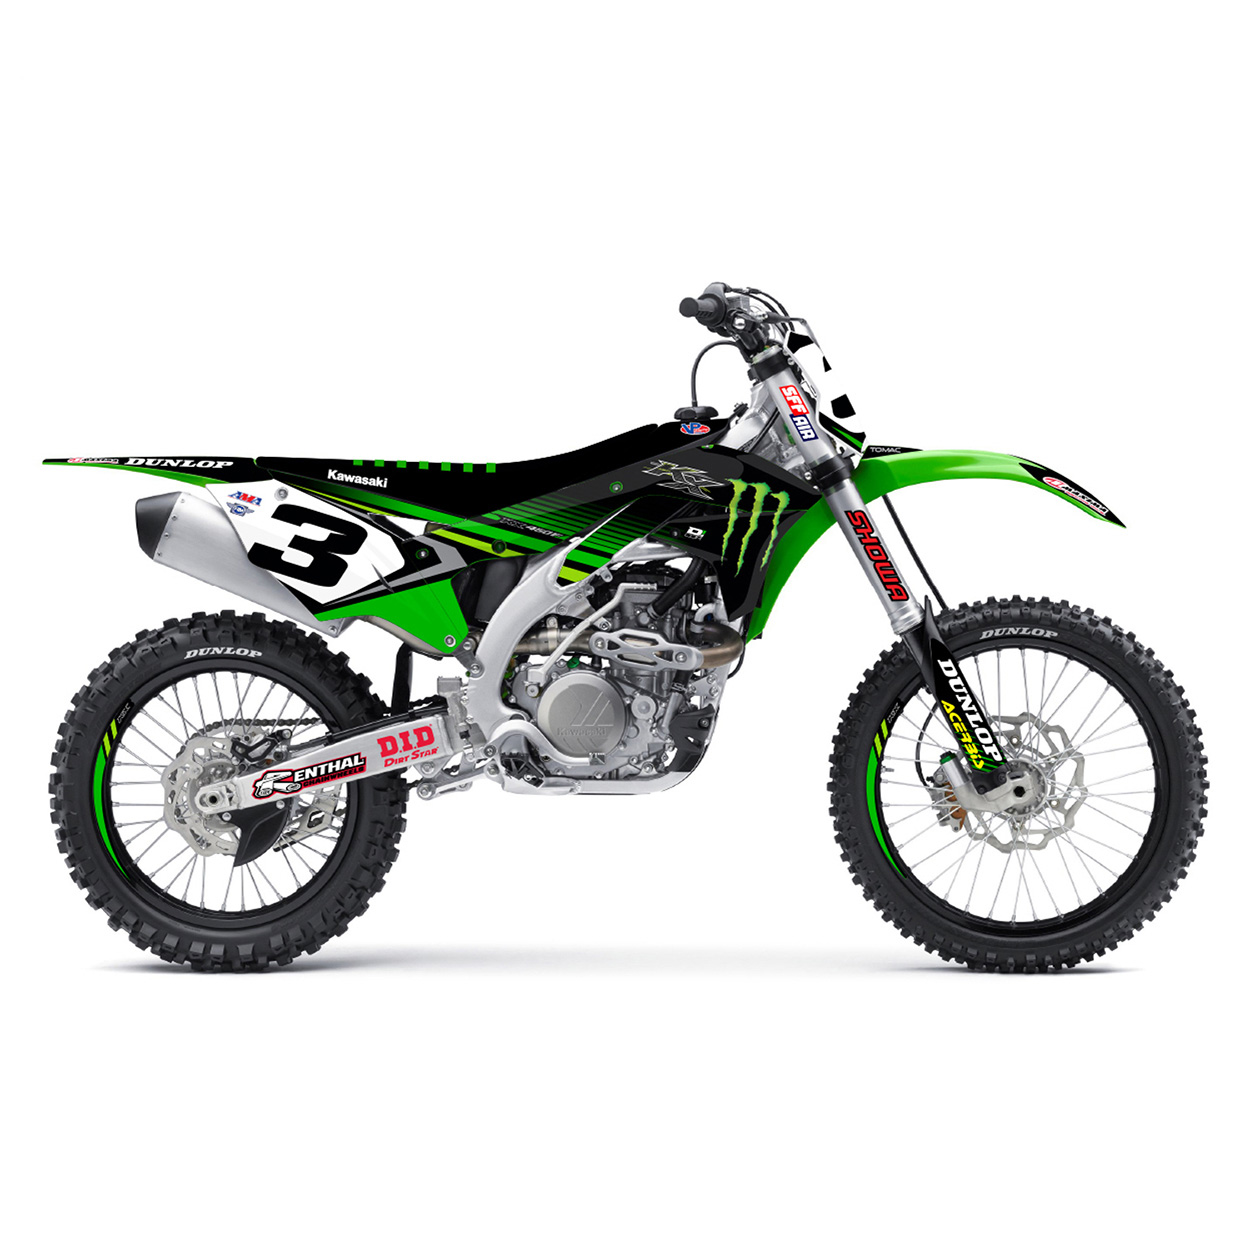 D'cor 2018 Team Monster Energy Full Graphic Kit Kawasaki KX125 KX250 KX250F KX450F Stickerset Dekor-Kit  Kit Déco Complet